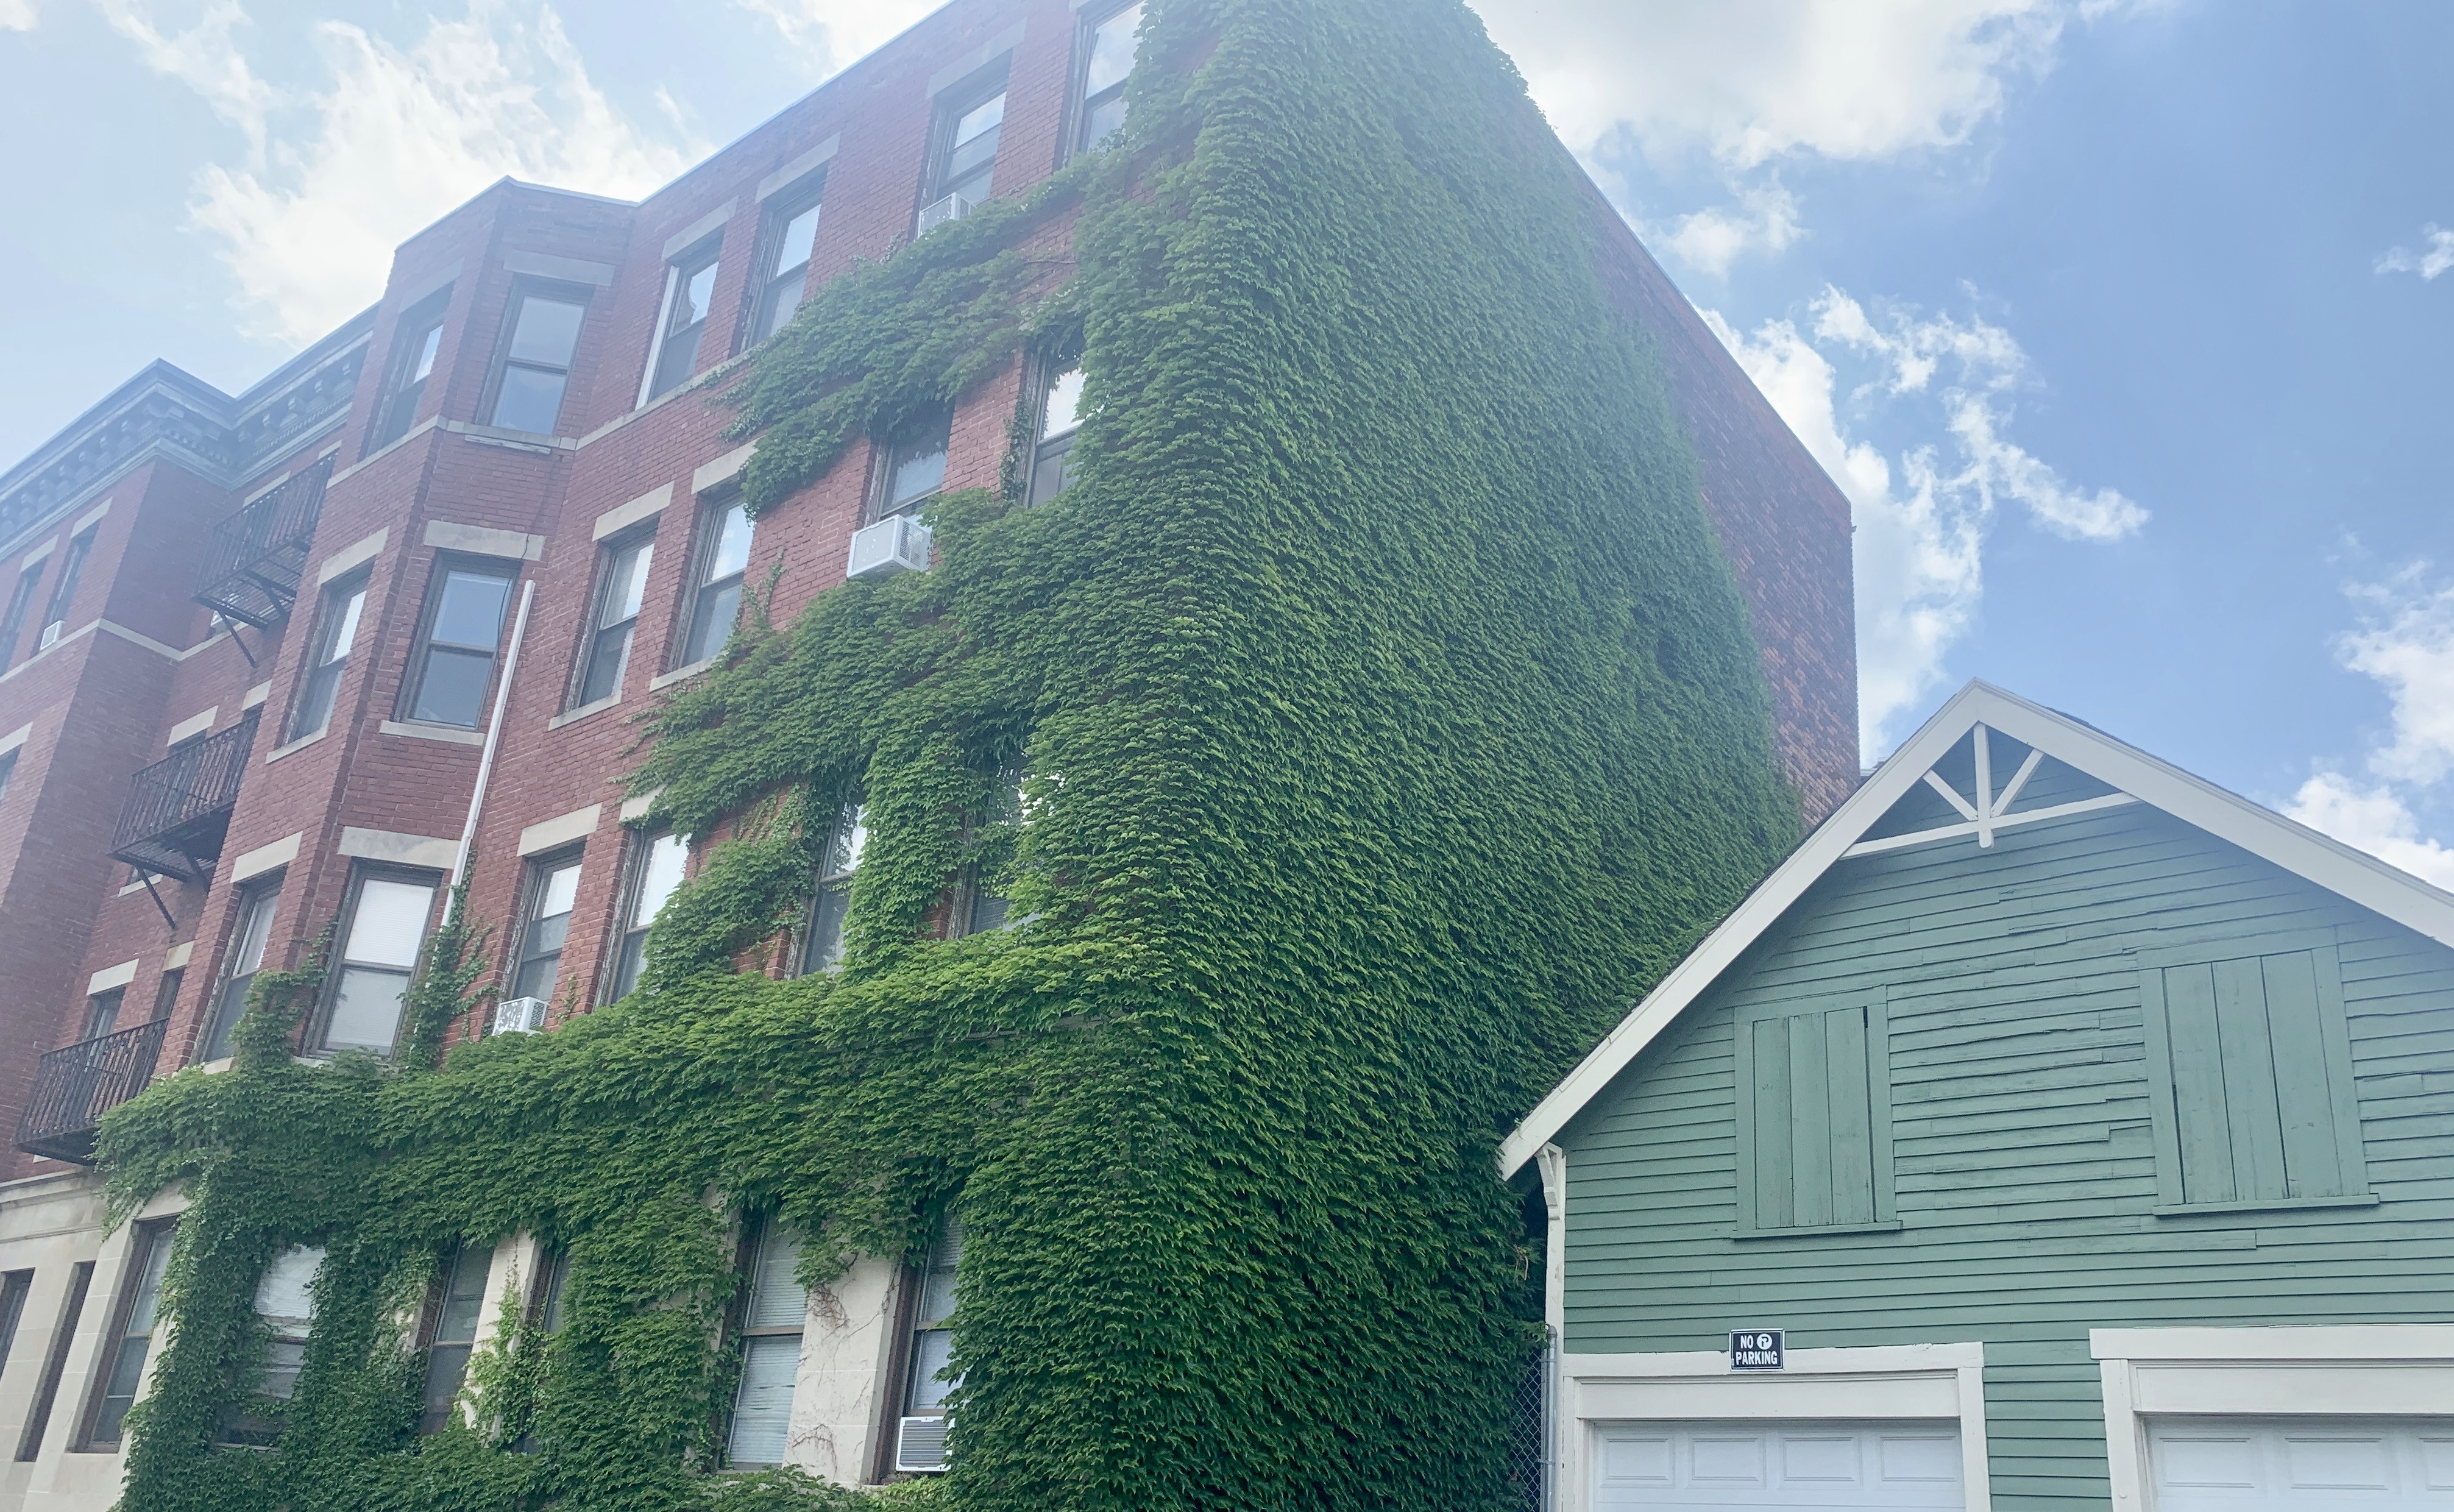 Reedsdale St Apartments near Commonwealth in Allston, MA